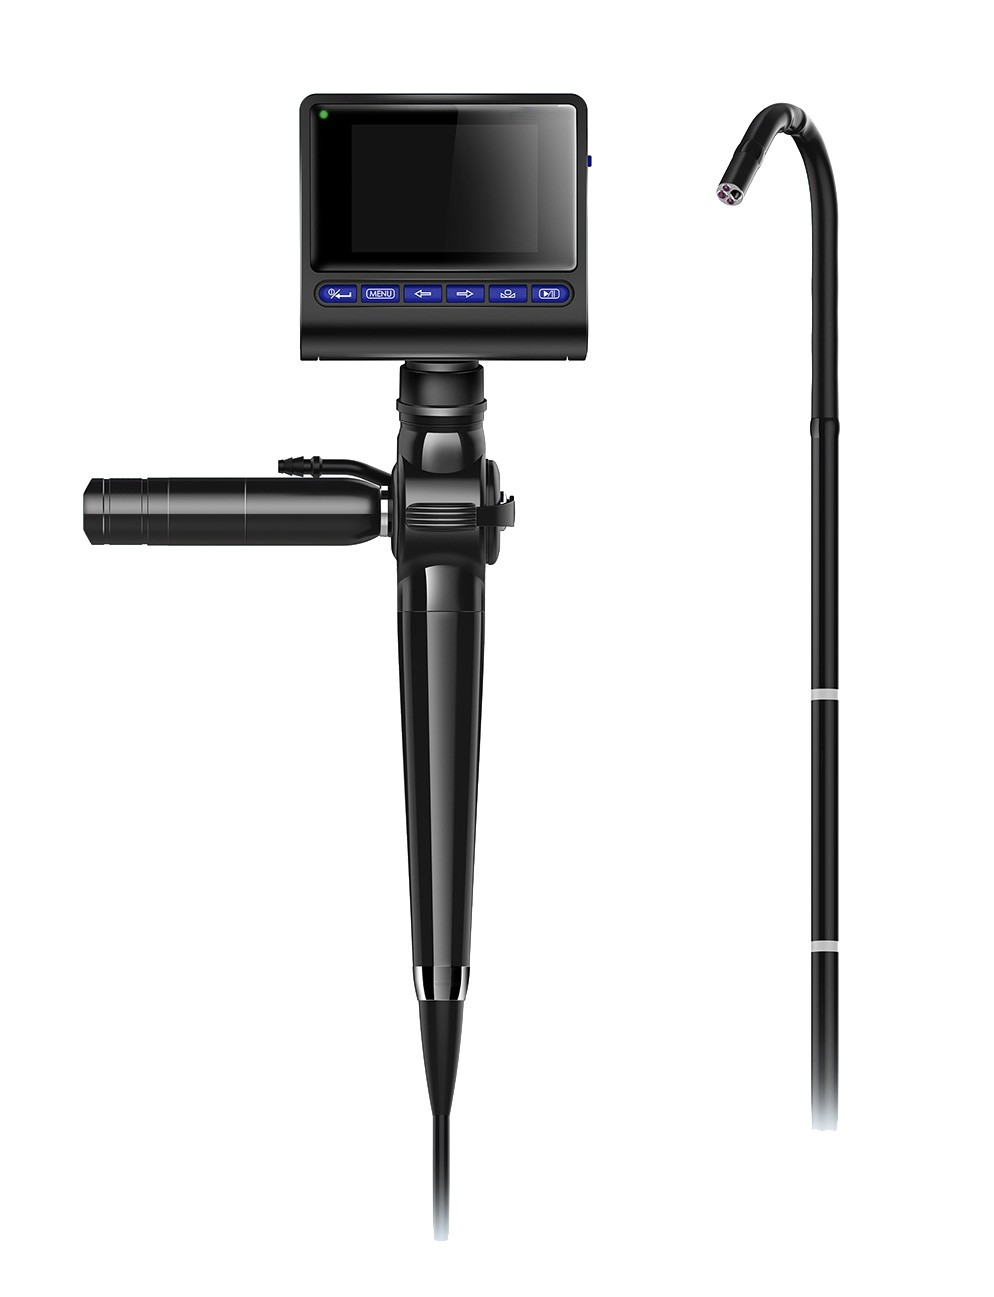 New Whittemore Cosmos 5800 Portable H.D Videoscopes 5.8mm x 1000mm x 2.6mm Instrument Channel Up 140° Down 130°